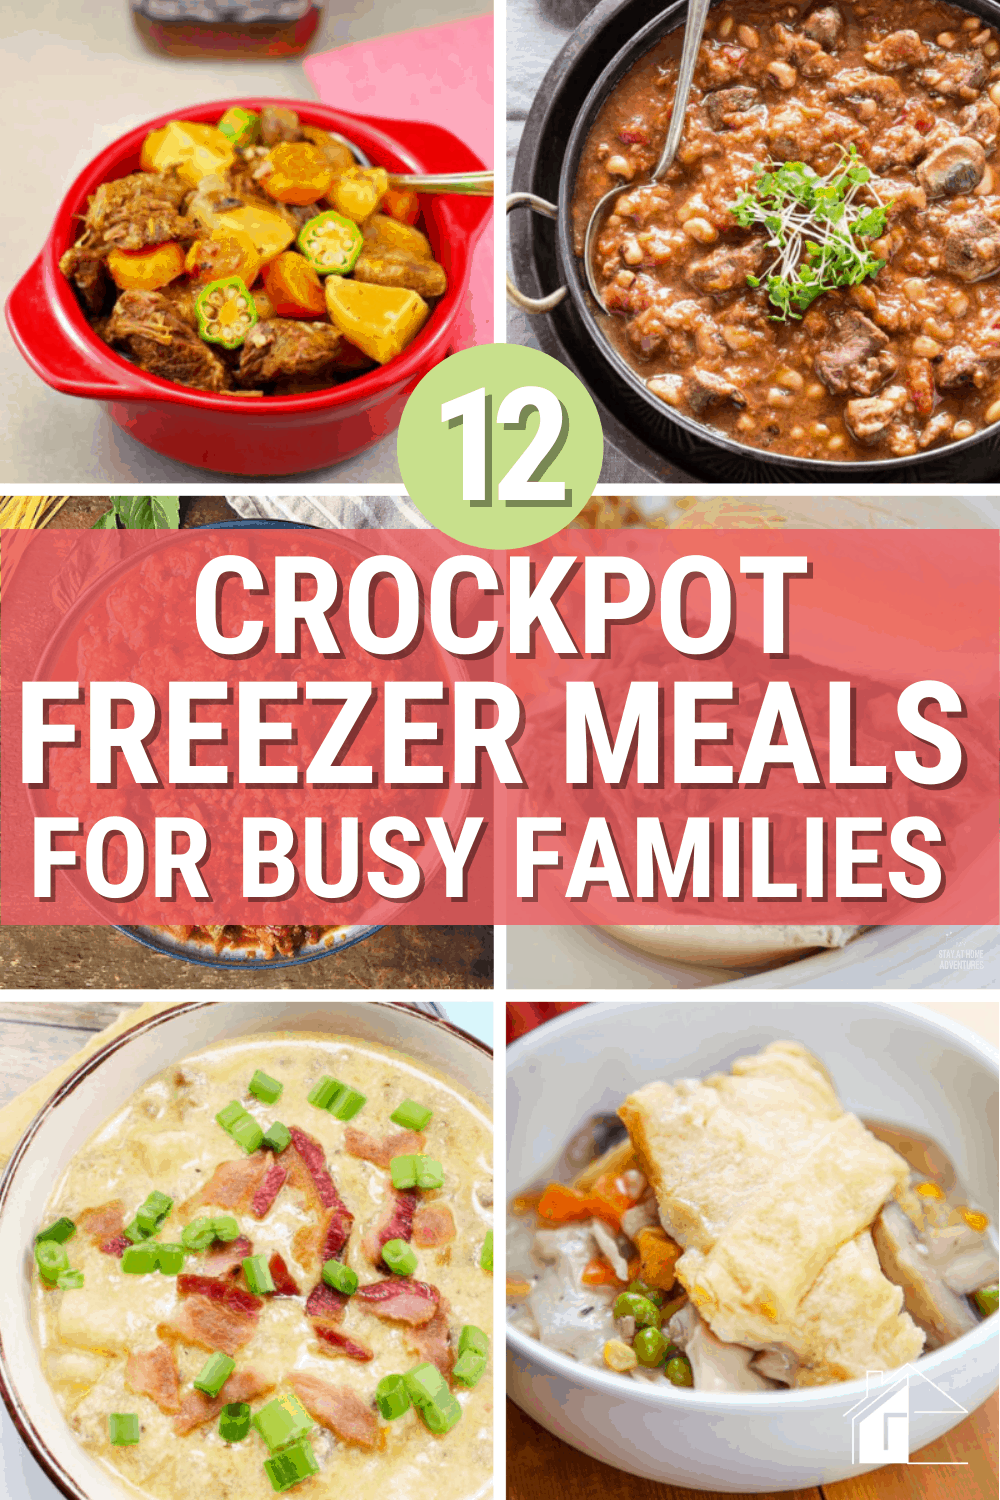 Are you looking for a way to save time and money on meal preparation? Check out these crockpot freezer meals for busy families. #slowcookerrecipes #crockpotrecipes #freezermeals via @mystayathome